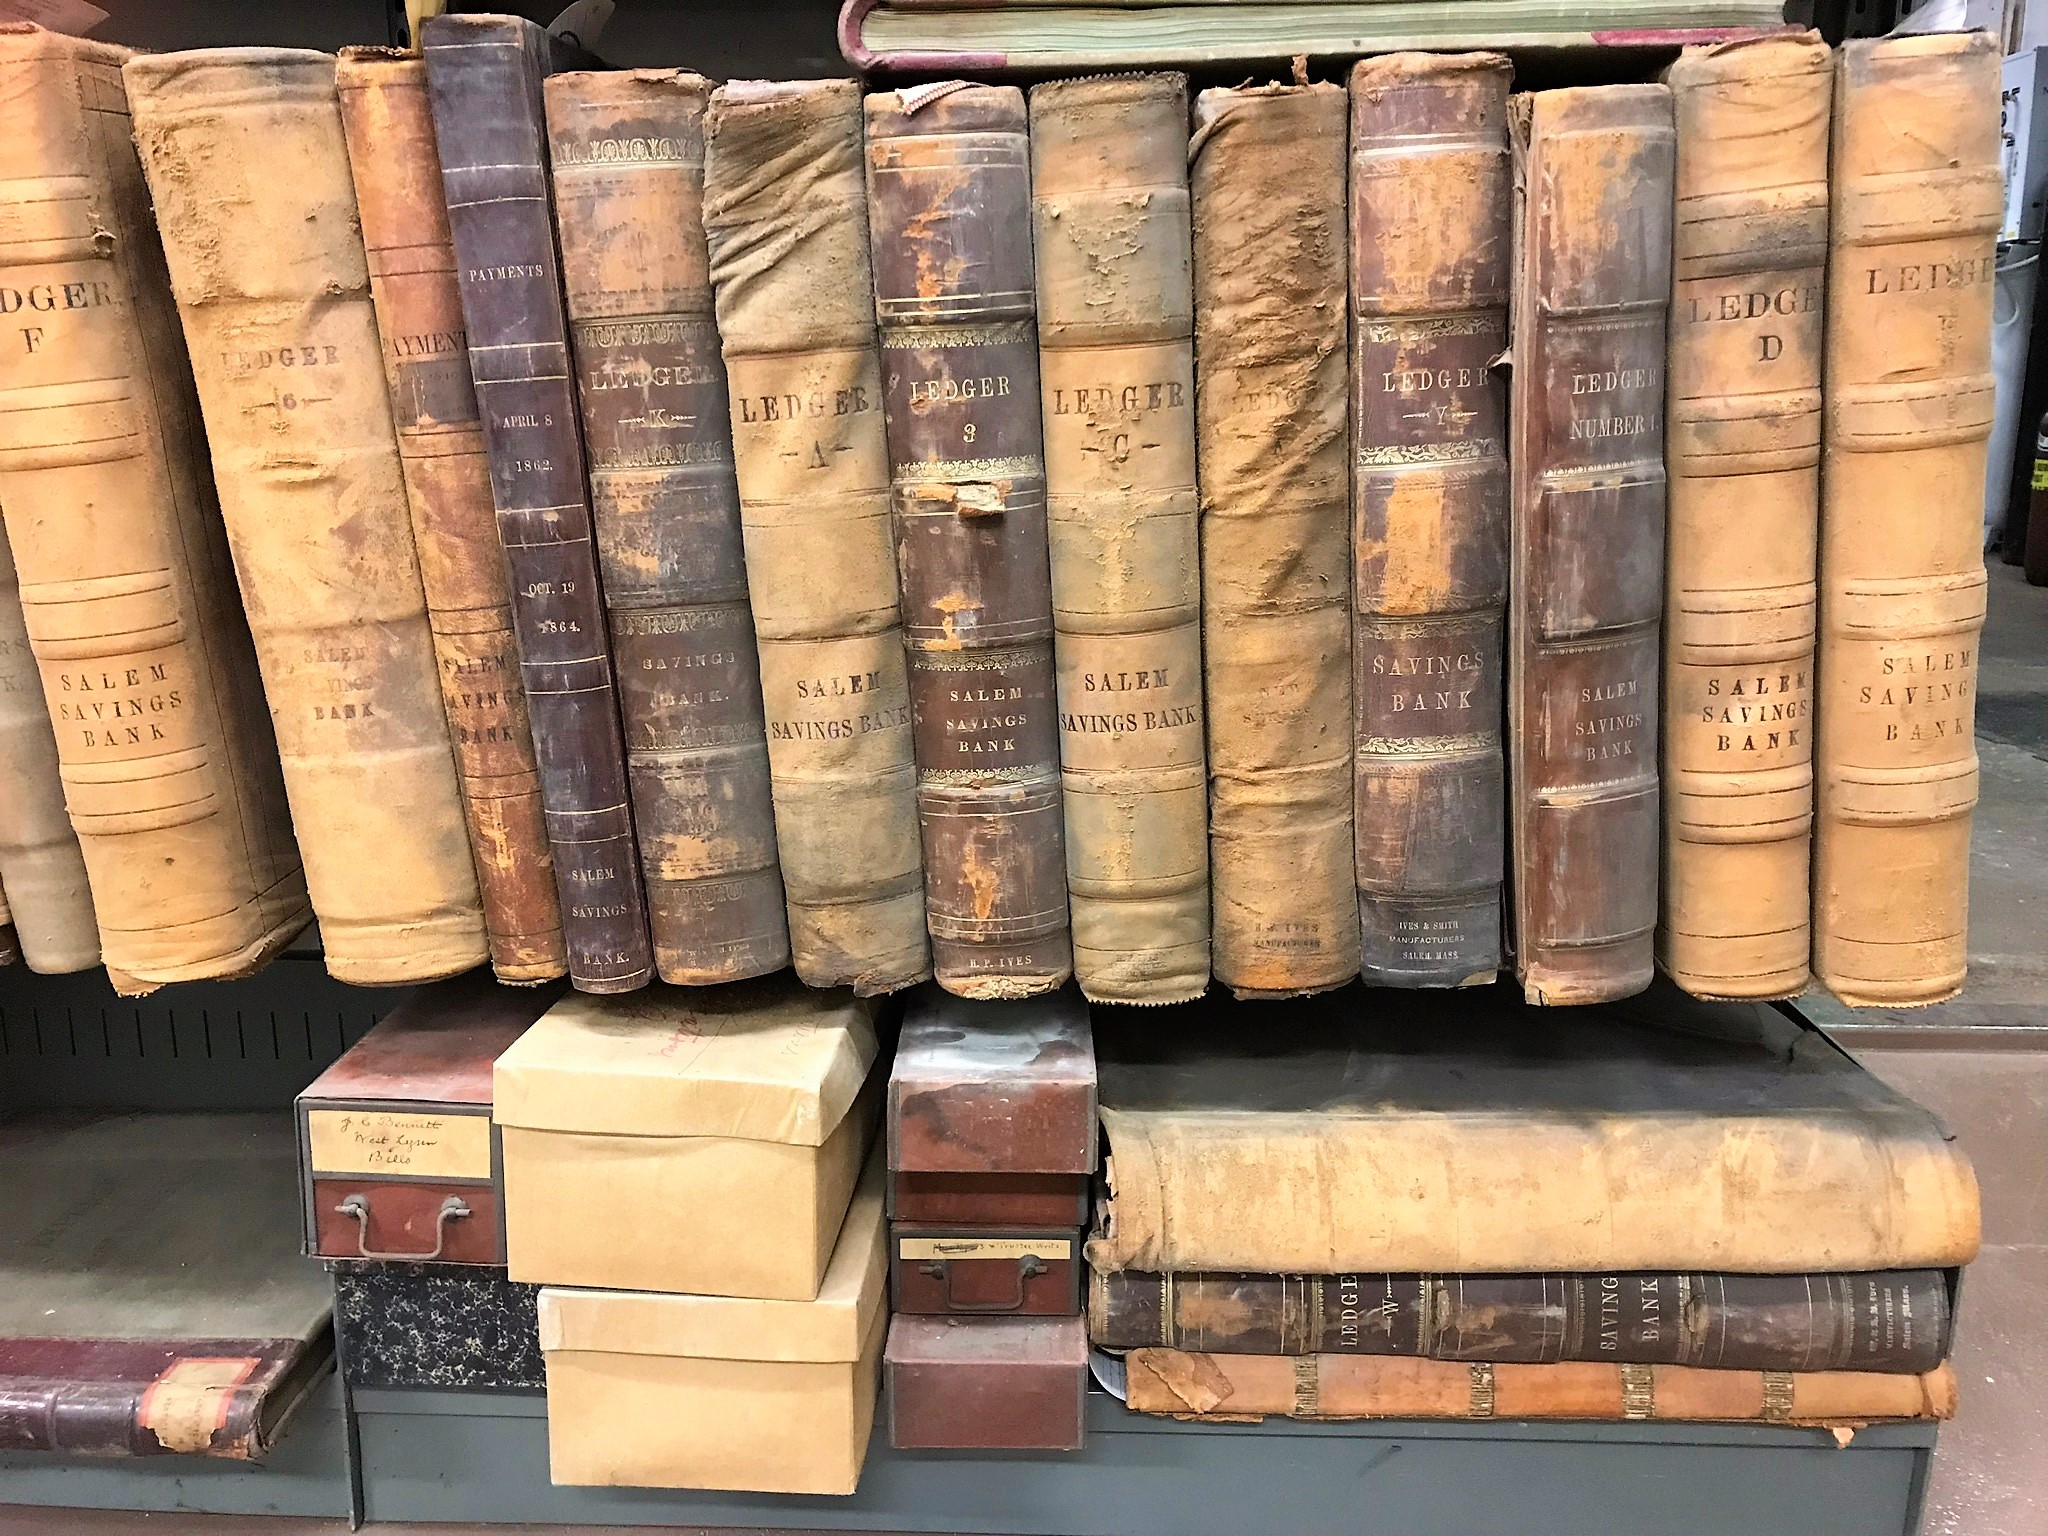 Salem Savings Bank Ledgers